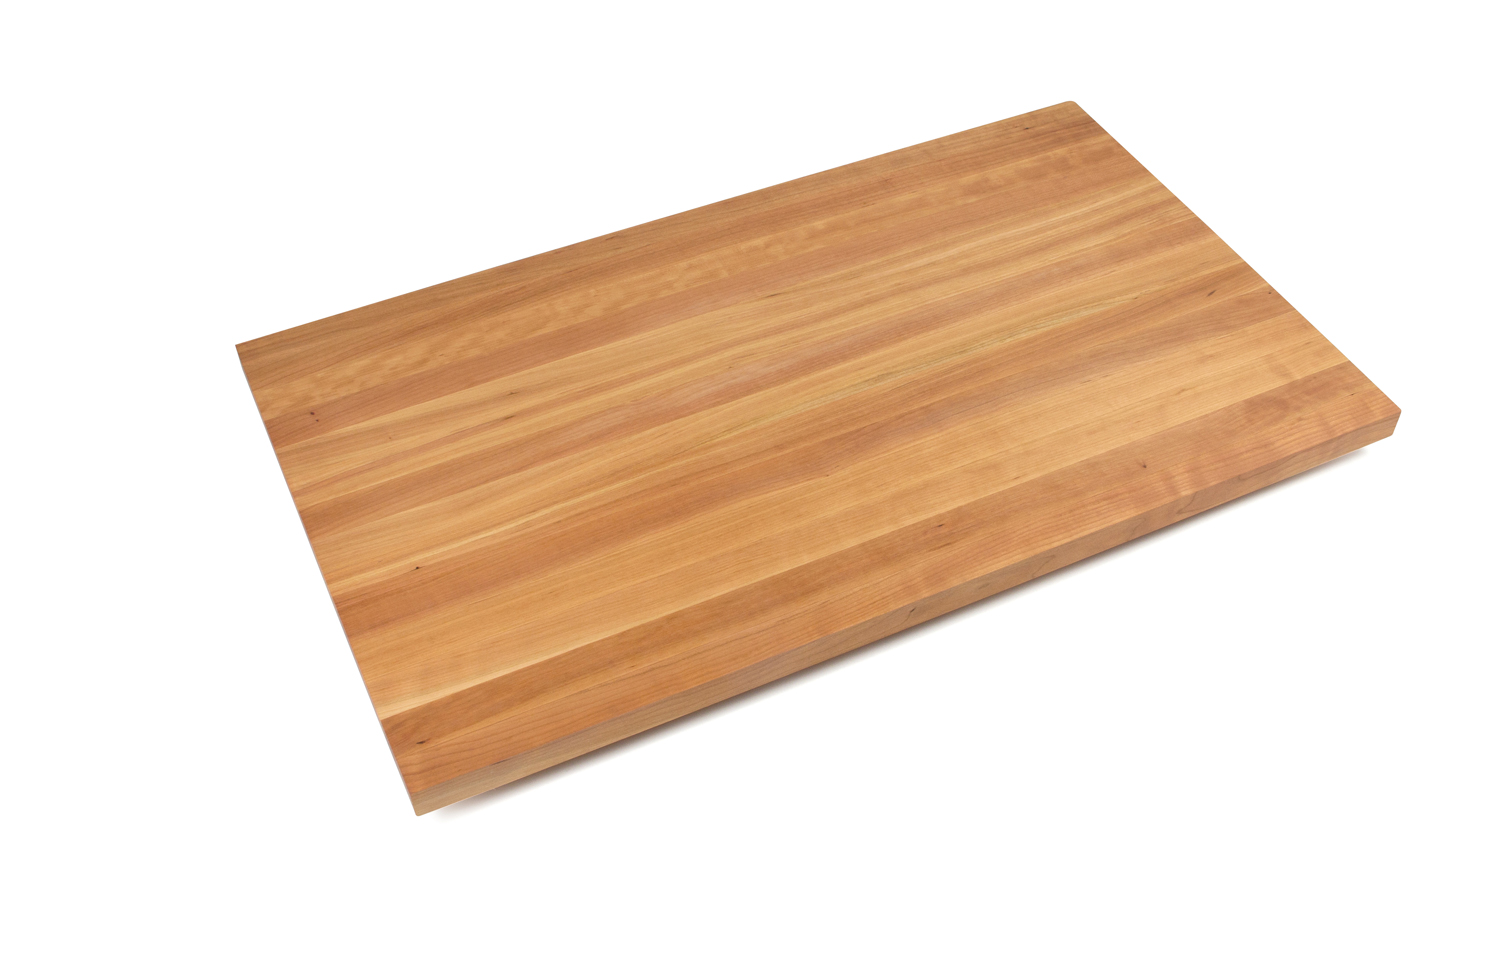 3 inch thick cherry countertop edge grain butcher block 38 inches wide